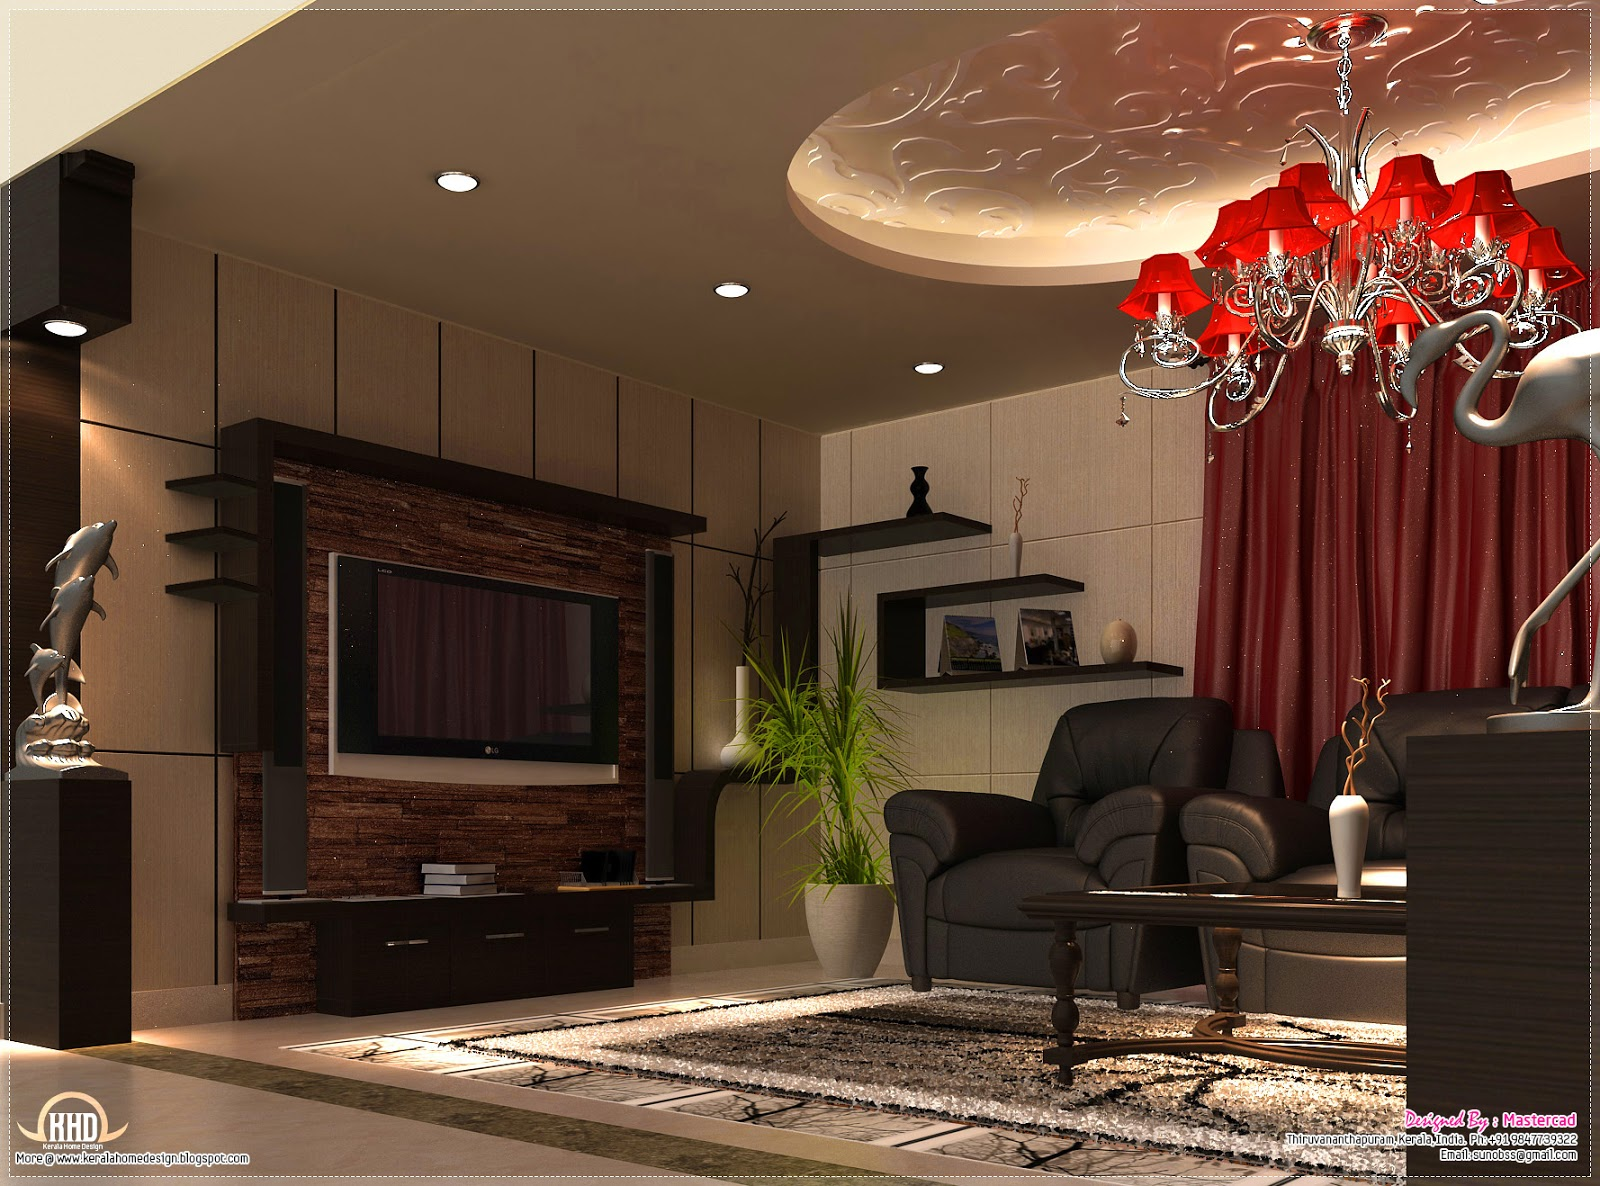 Interior design ideas kerala home design and floor plans for House design interior decorating